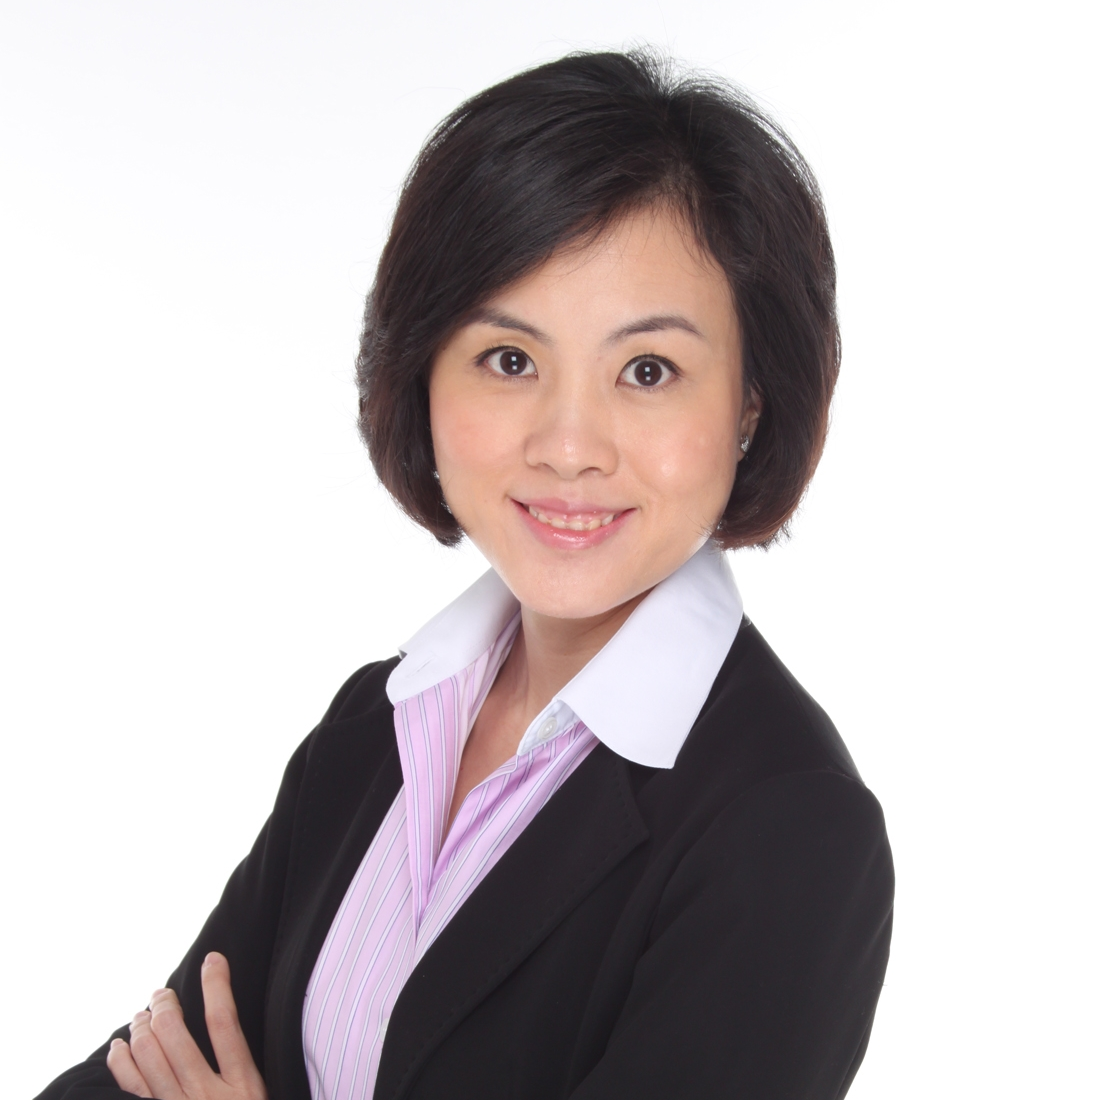 Agnes Lim, Chief Financial Officer, Asia Pacific at JLL